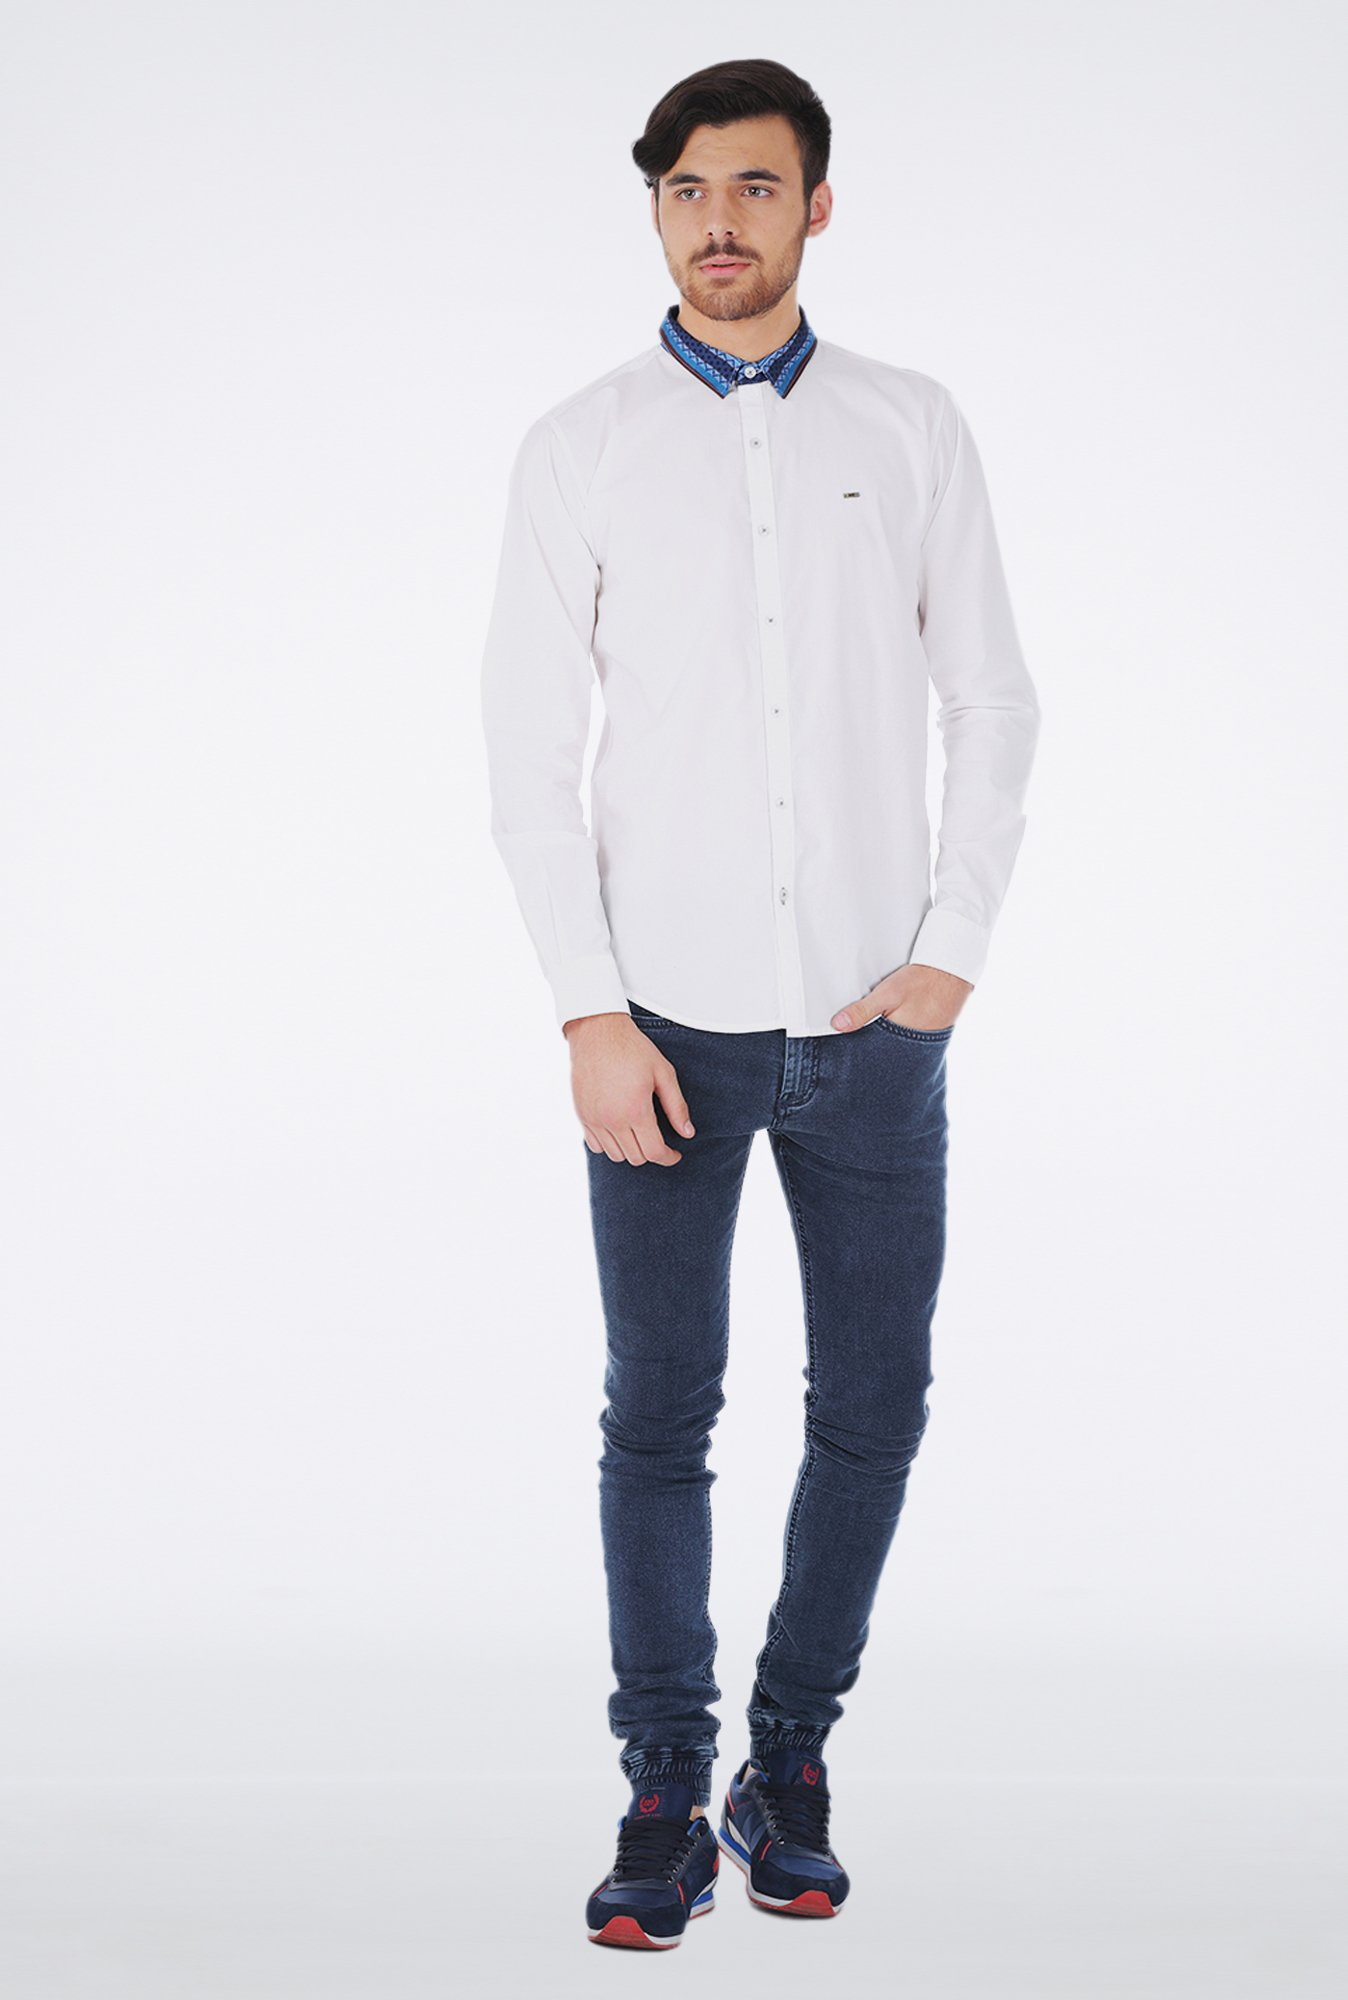 Basics White Slim fit Casual Shirt